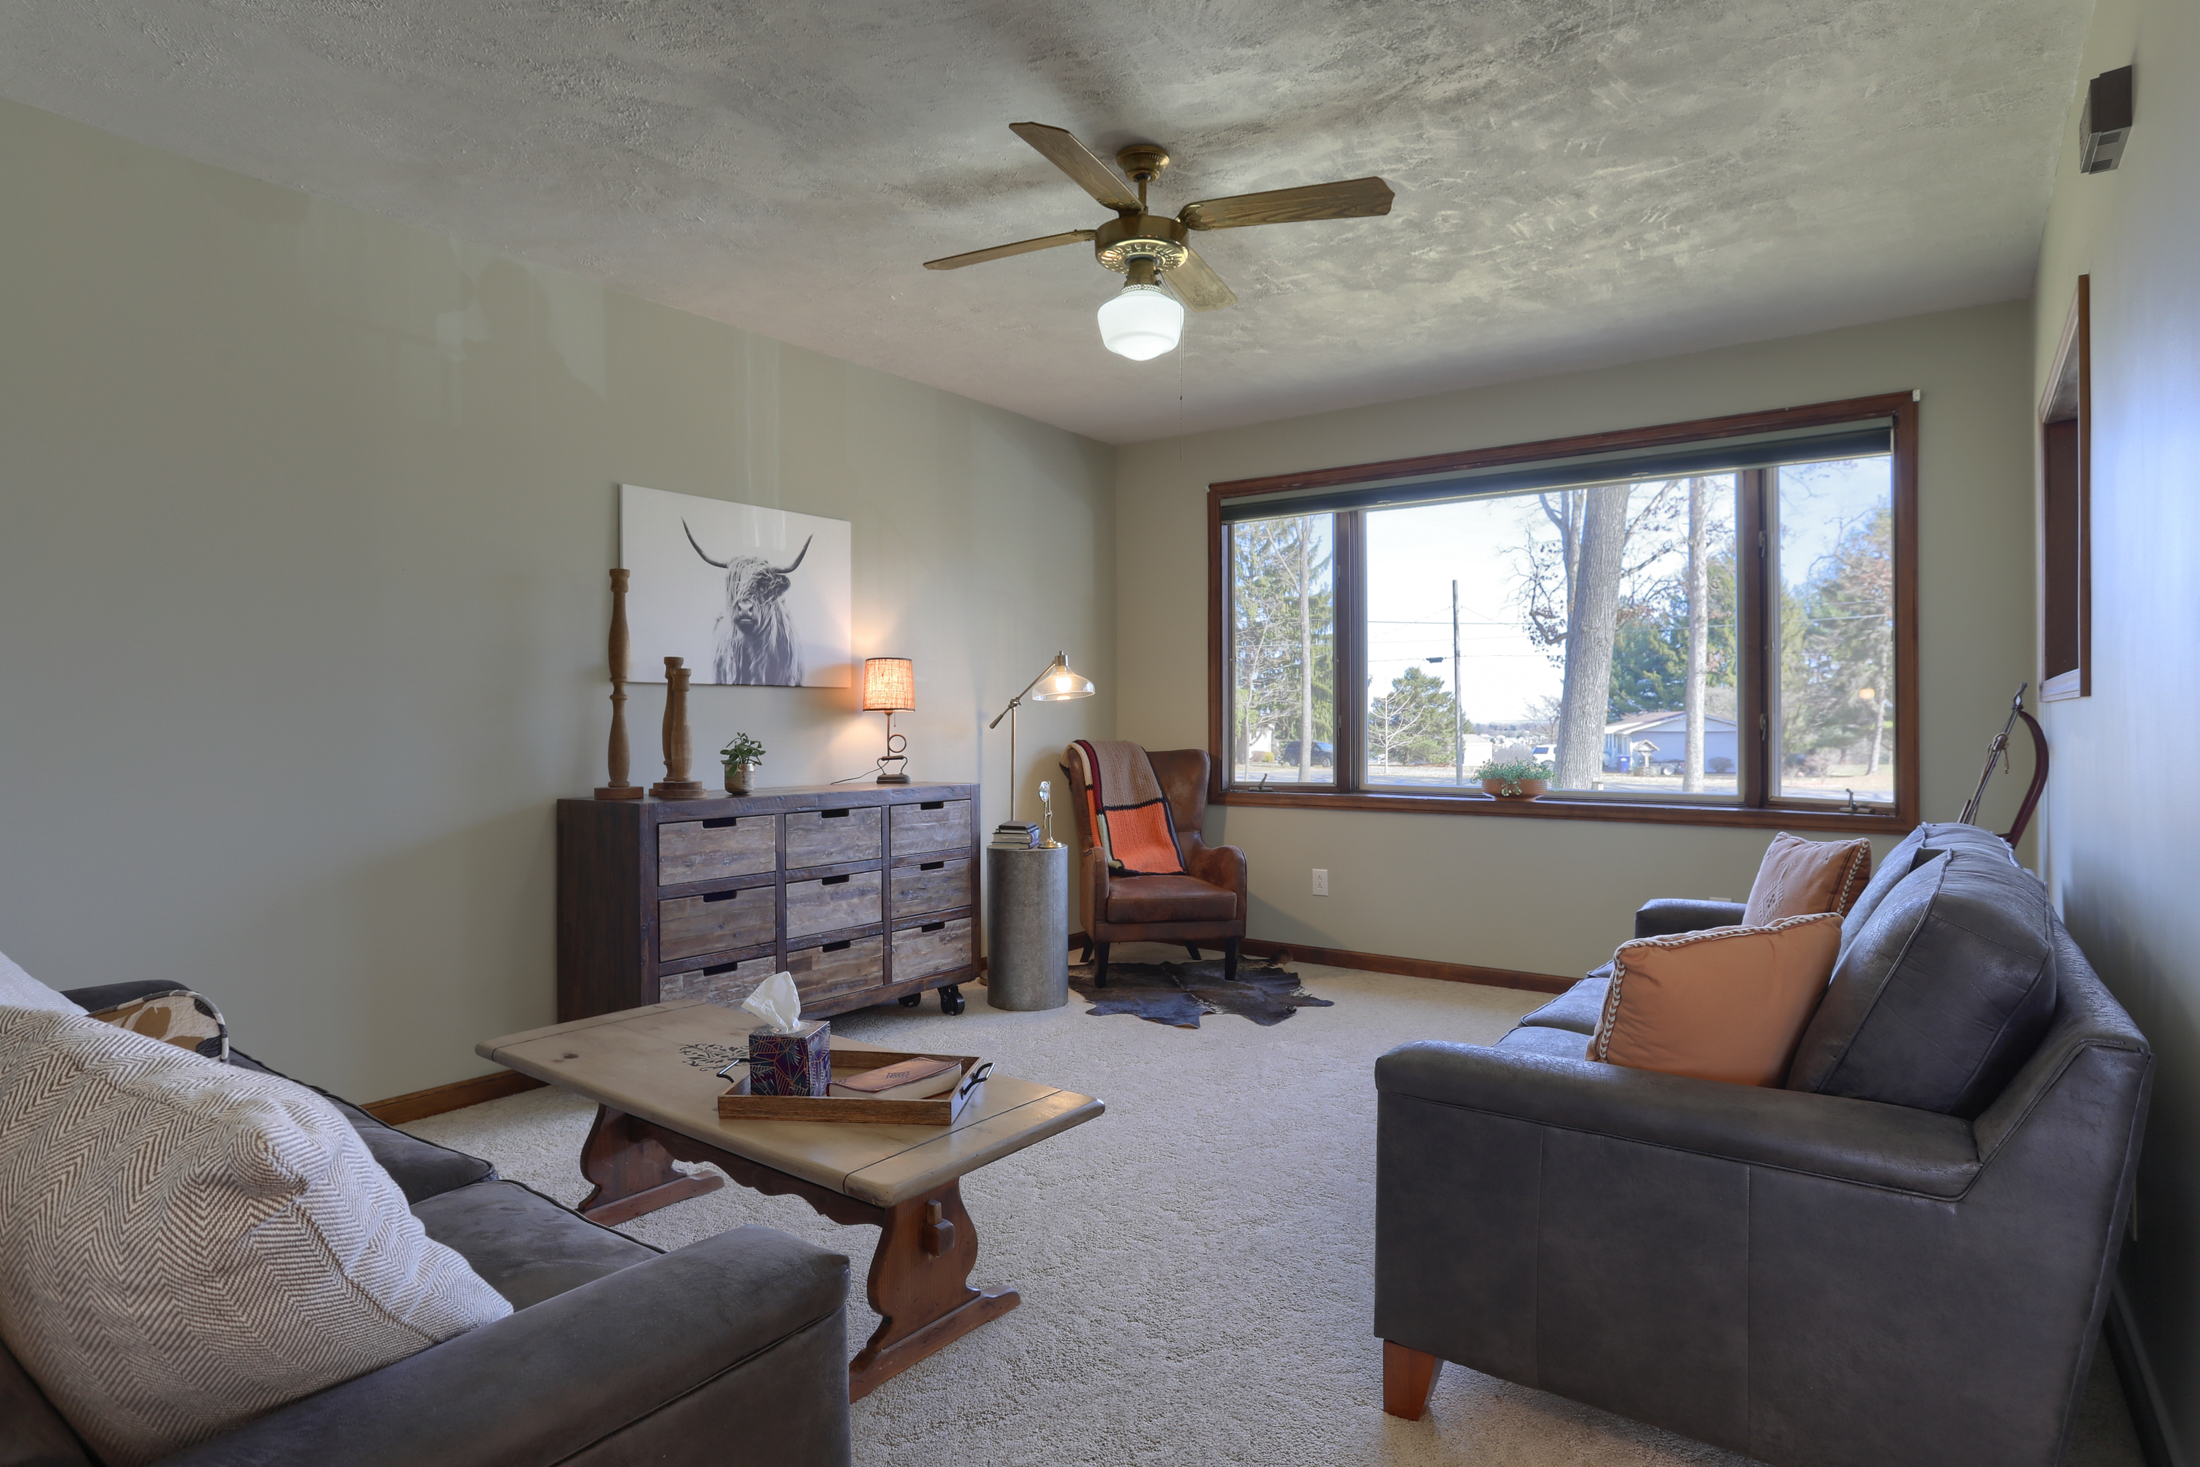 285 Strack Drive - living room with large window to enjoy quiet wooded setting